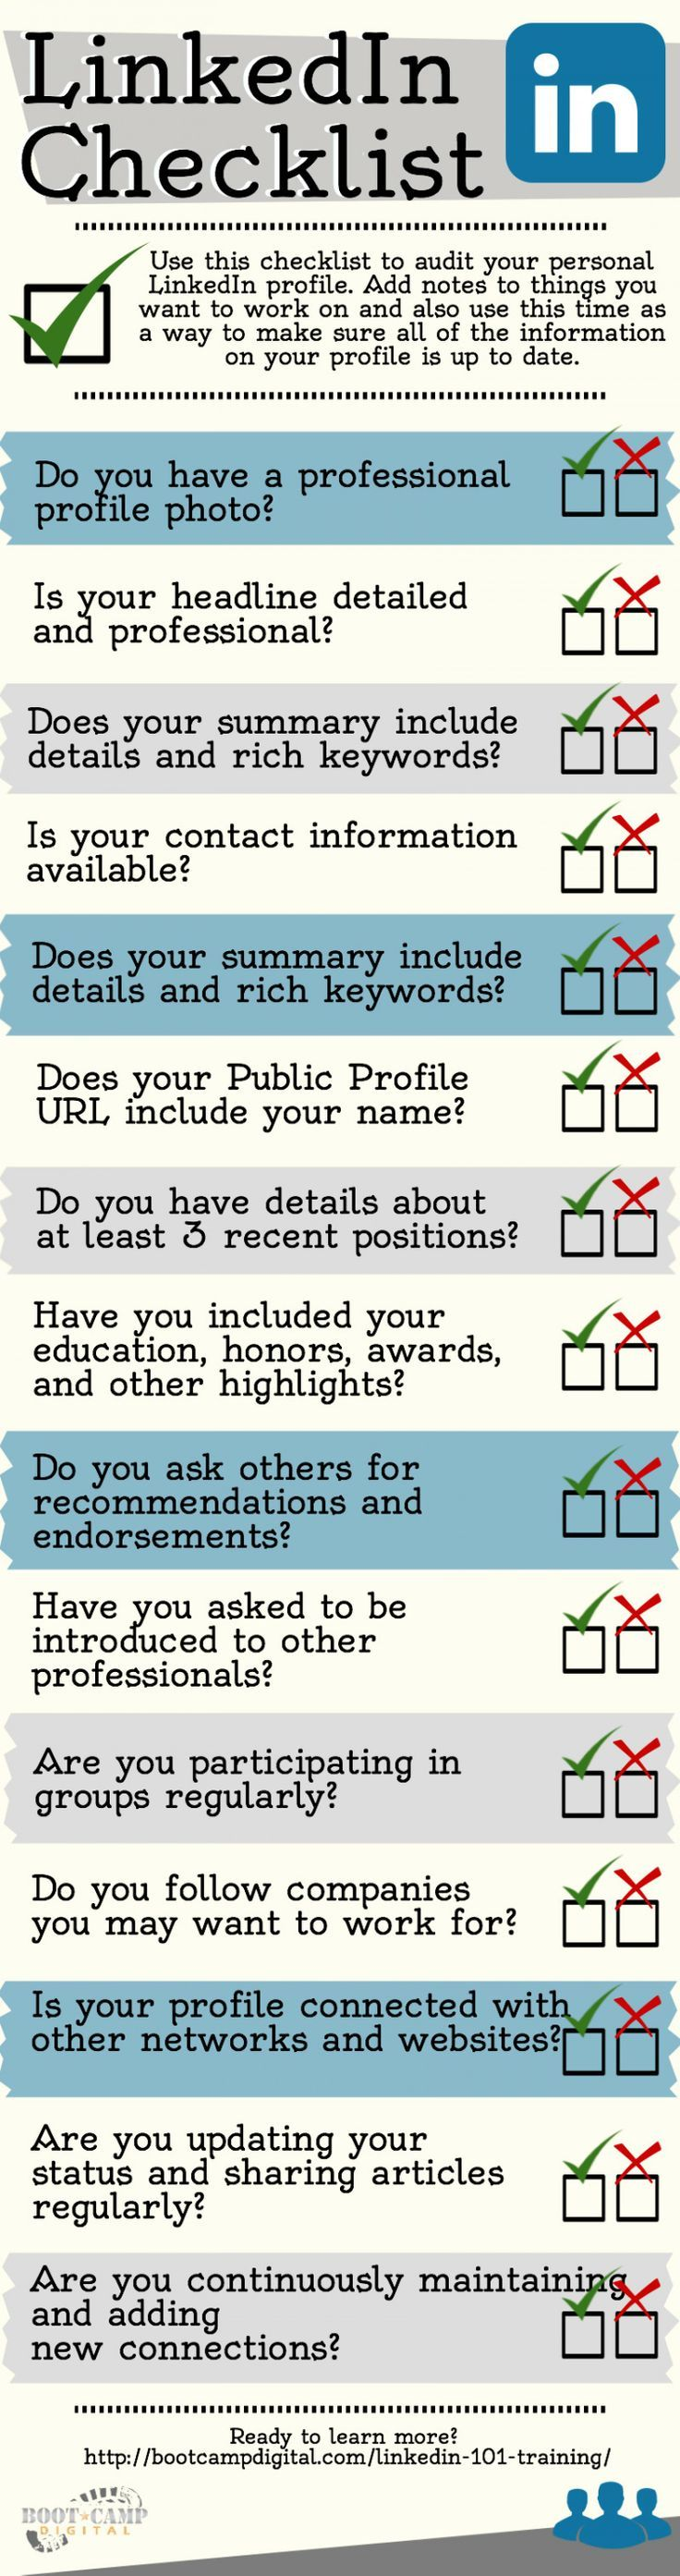 #LinkedIn Checklist [Infographic] - How to Create a Strong LinkedIn Profile #socialmedia #marketing